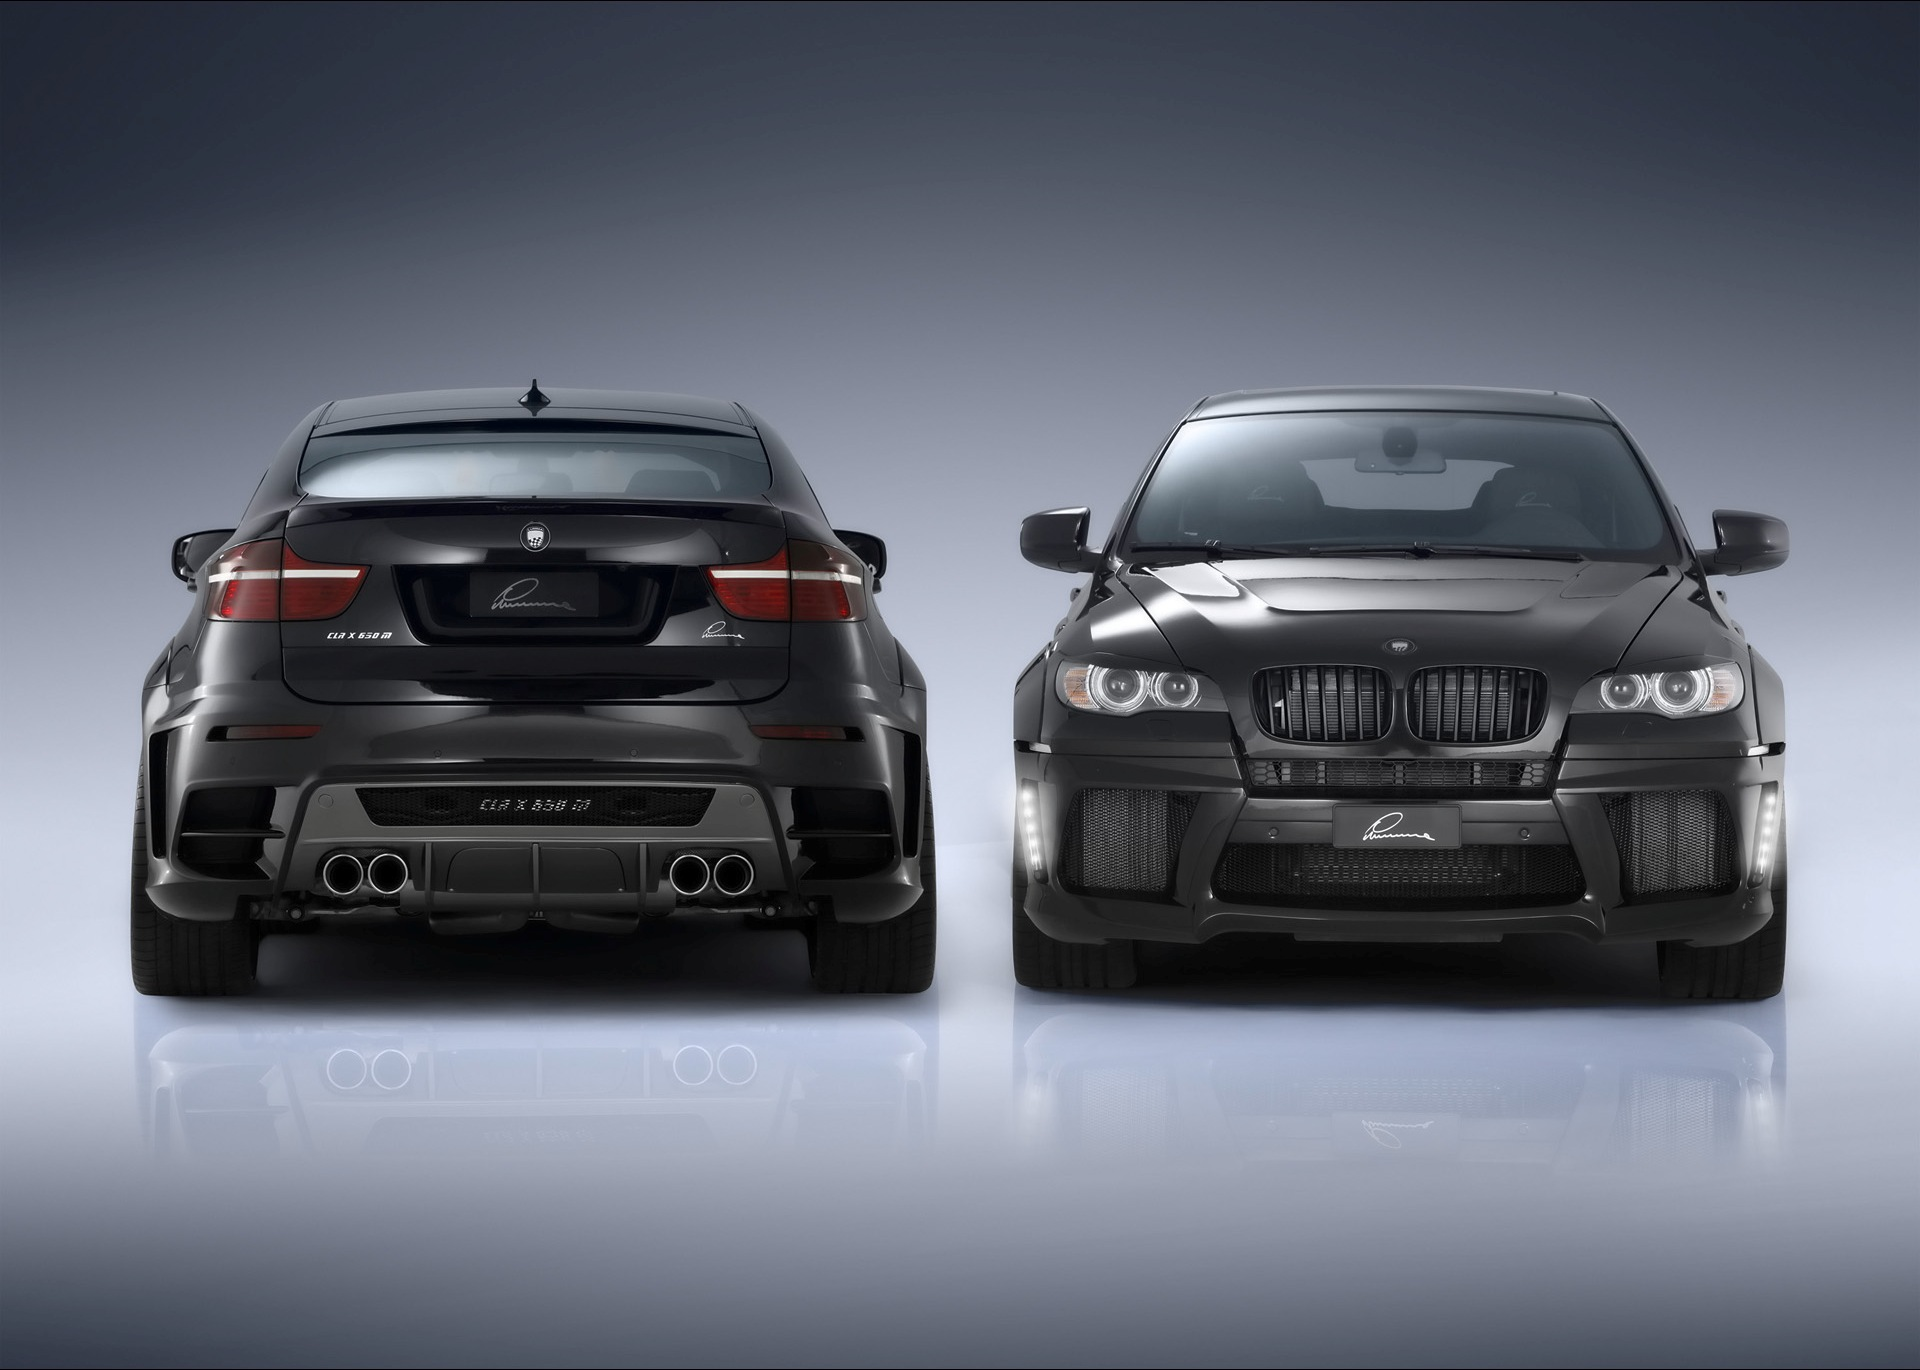 bmw x6 rear and front